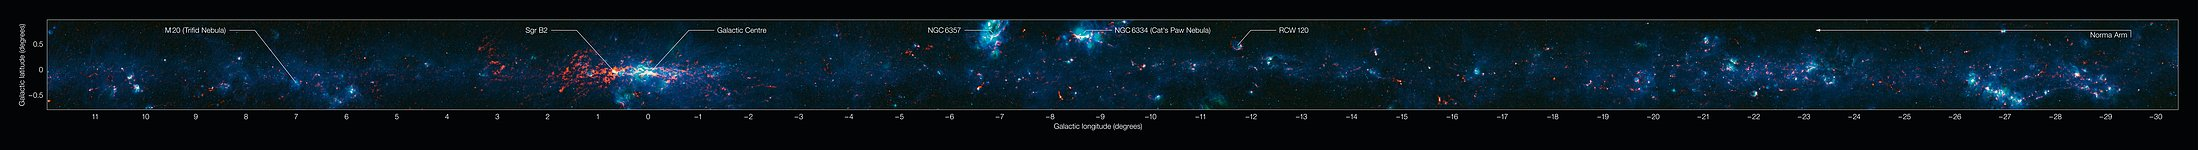 View of the Galactic Plane from the ATLASGAL survey (annotated)